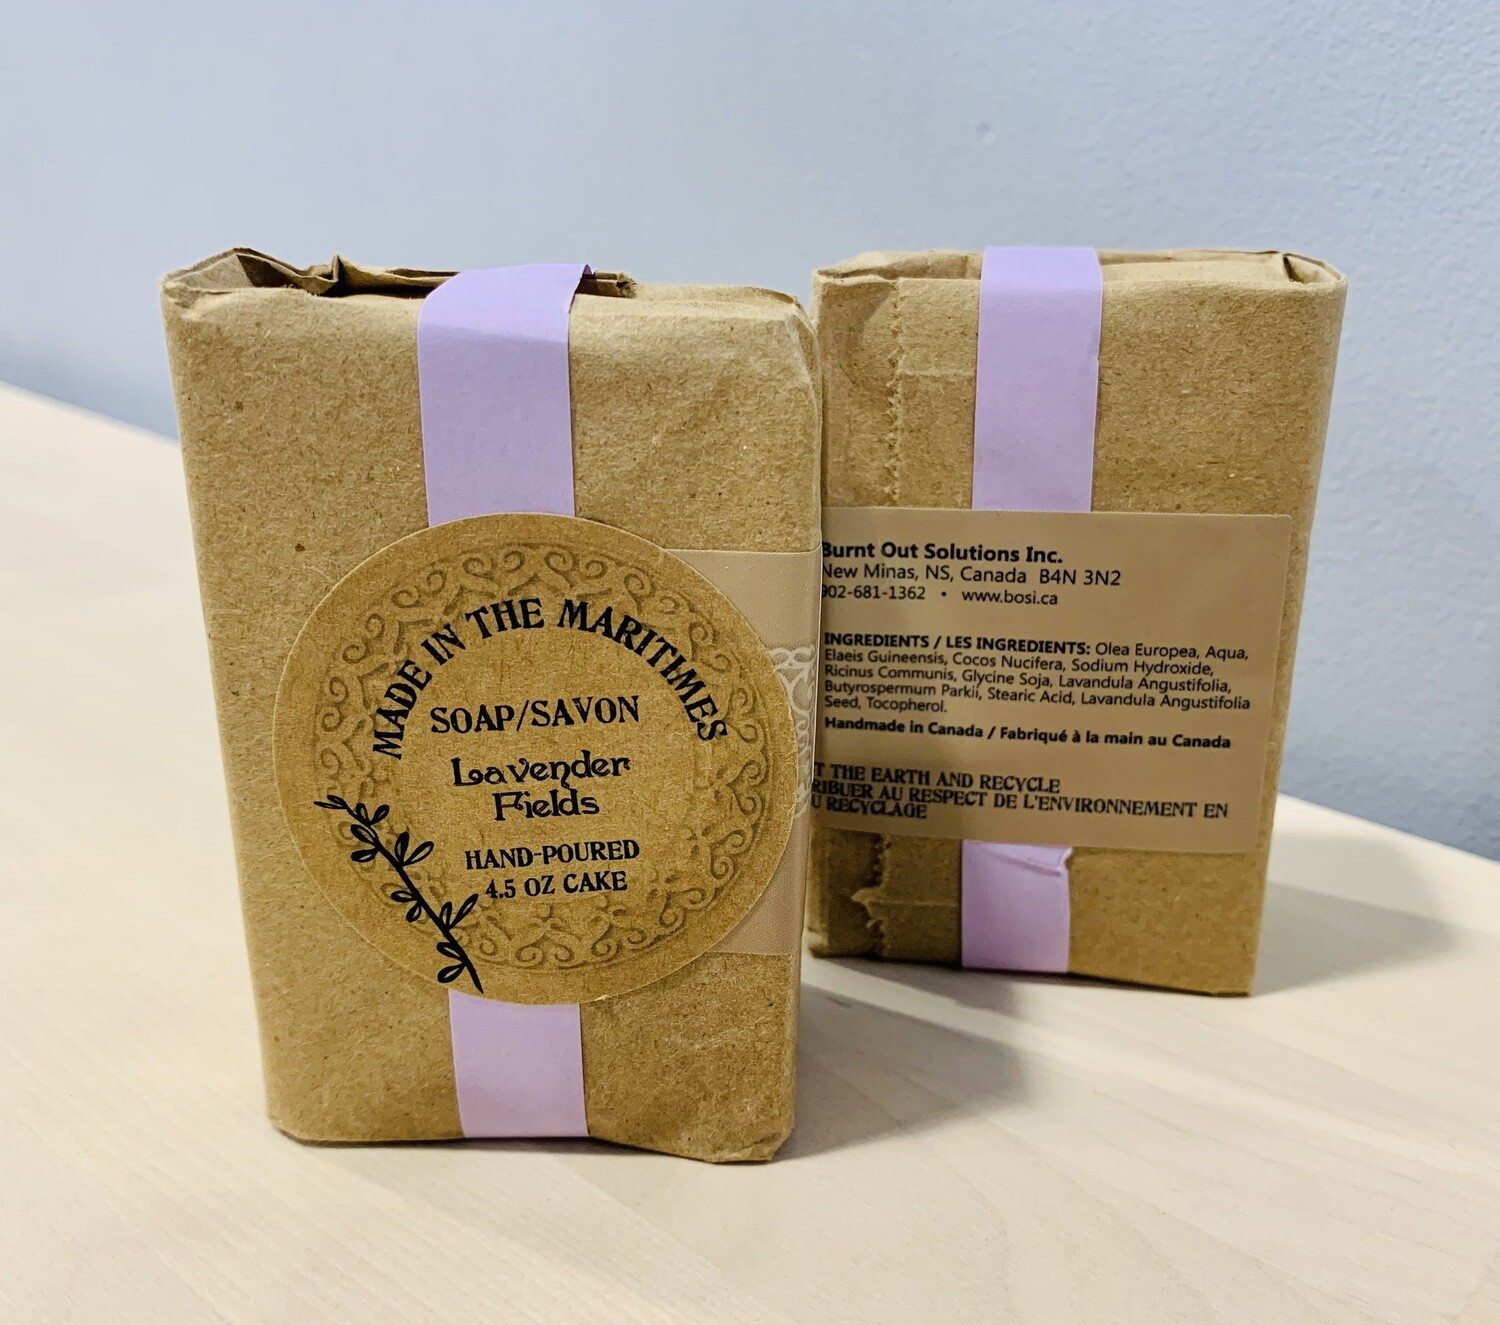 Made in the Maritimes Soap- Lavender Fields